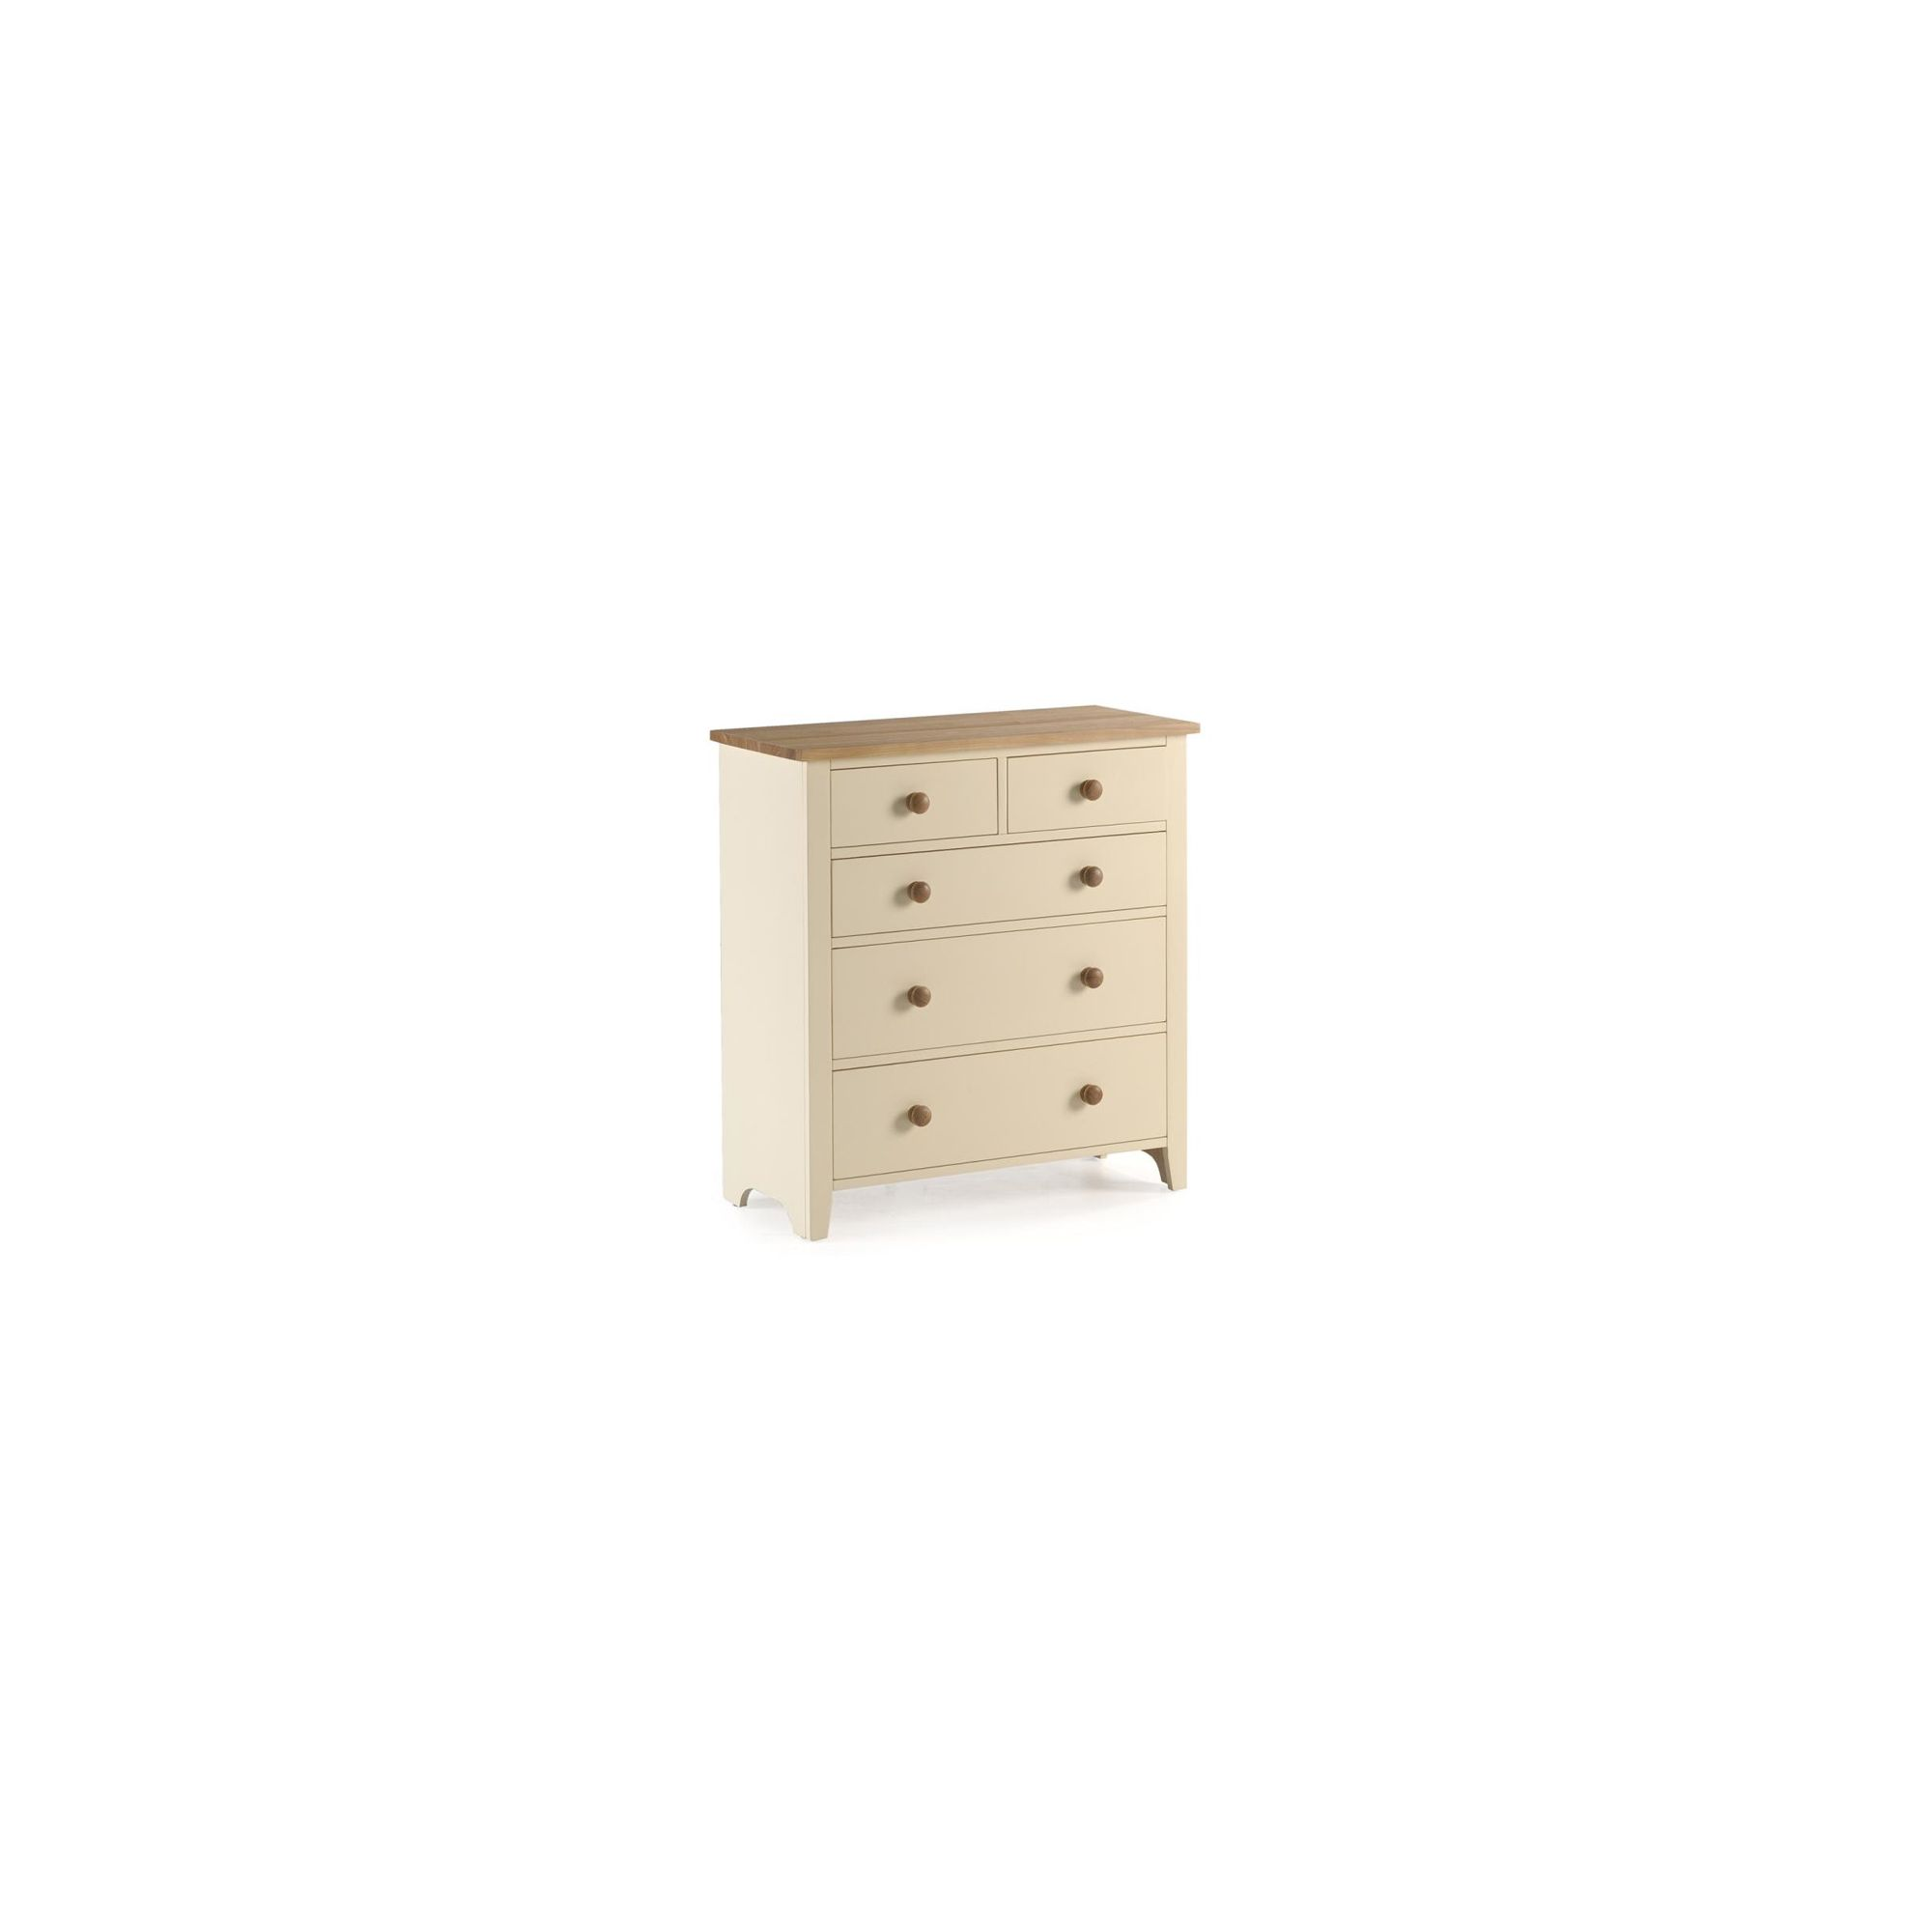 Ametis Camden Painted Pine and Ash Deep Chest in Painted Ivory - 96cm at Tesco Direct